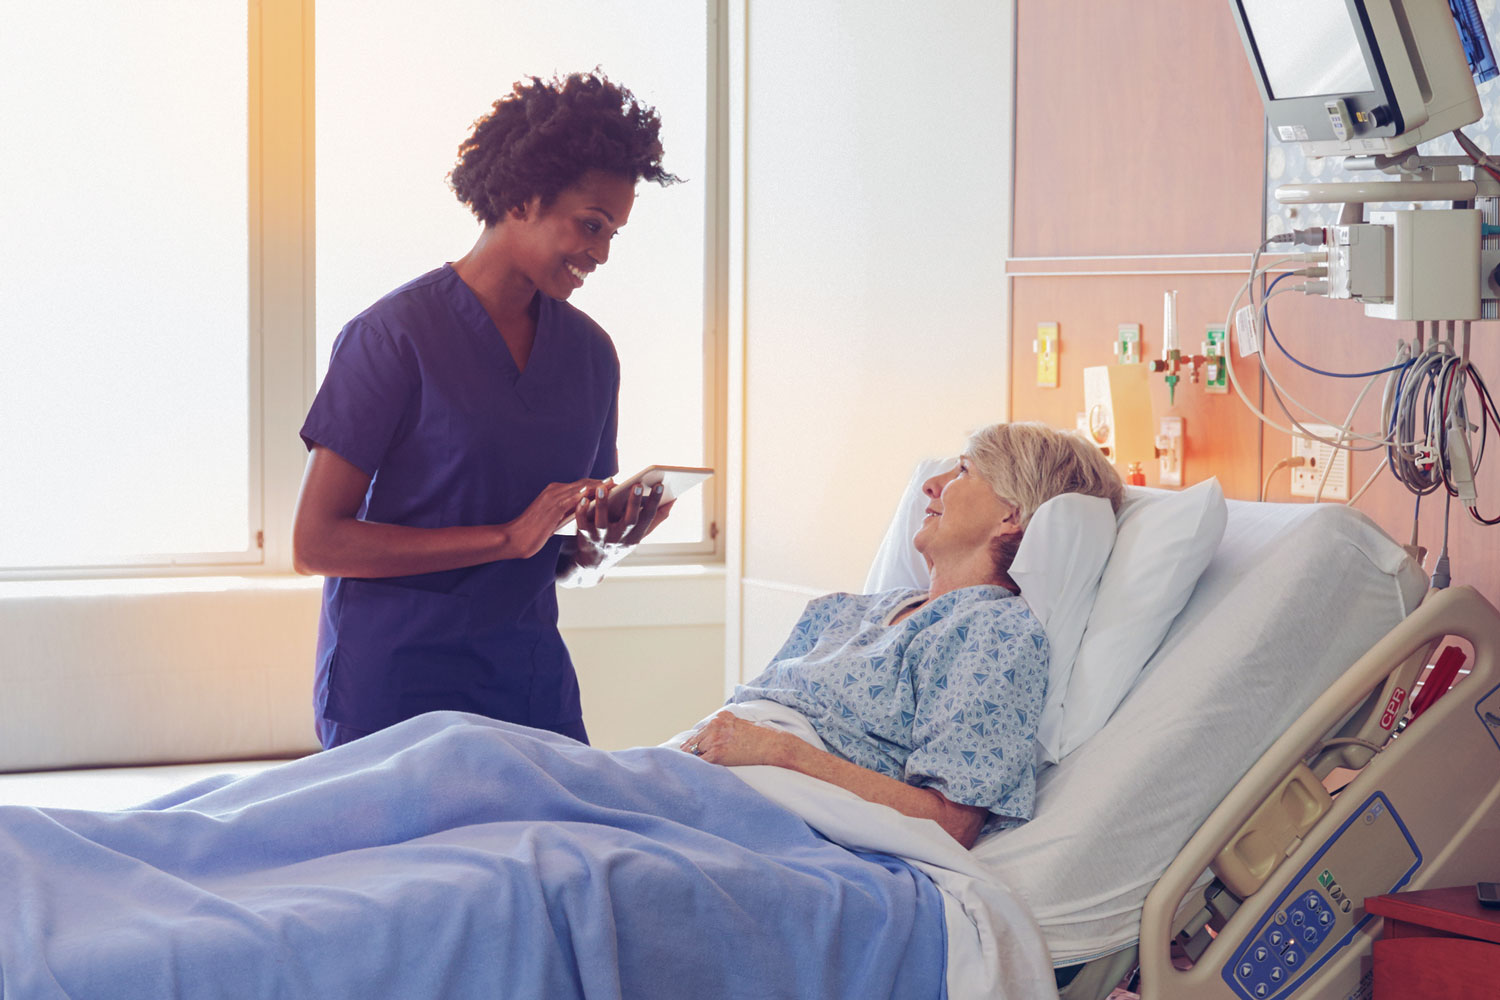 Doctors on busy units can be pressed for time, but having a plan in mind for conducting a focused conversation with their patients can make a difference for both doctors and patients.